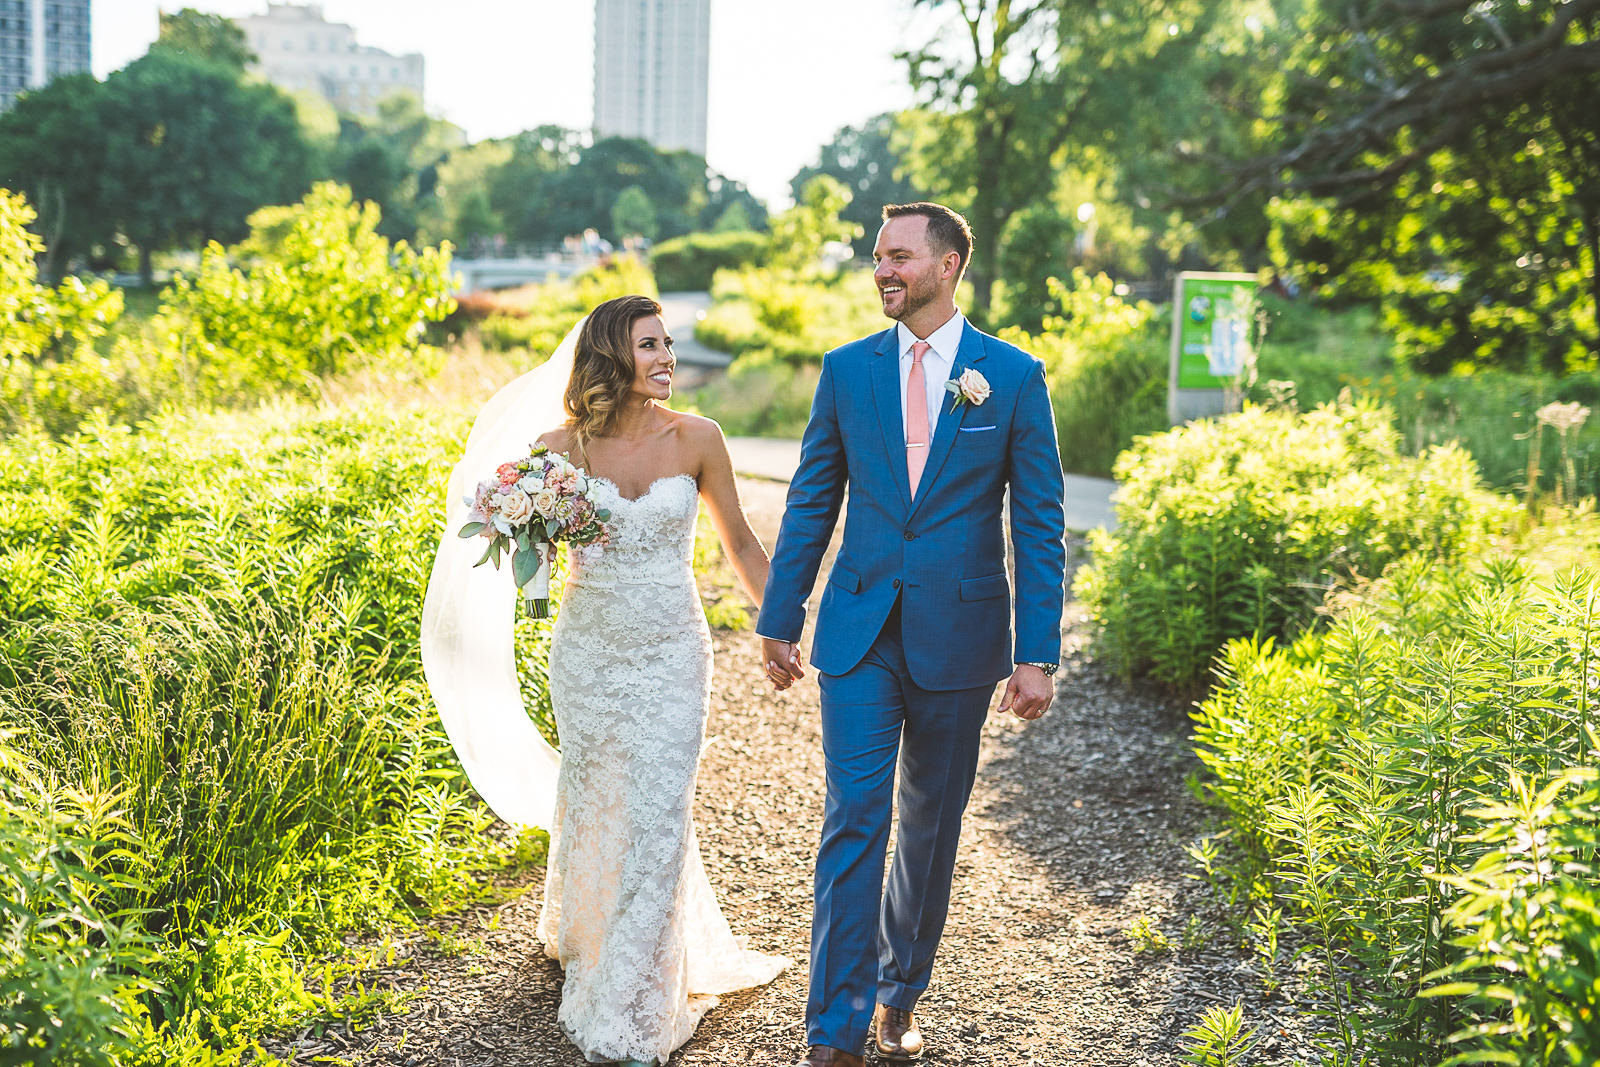 36 bride and groom walking around park - Natalie + Alan // Chicago Wedding Photographer at Cafe Brauer